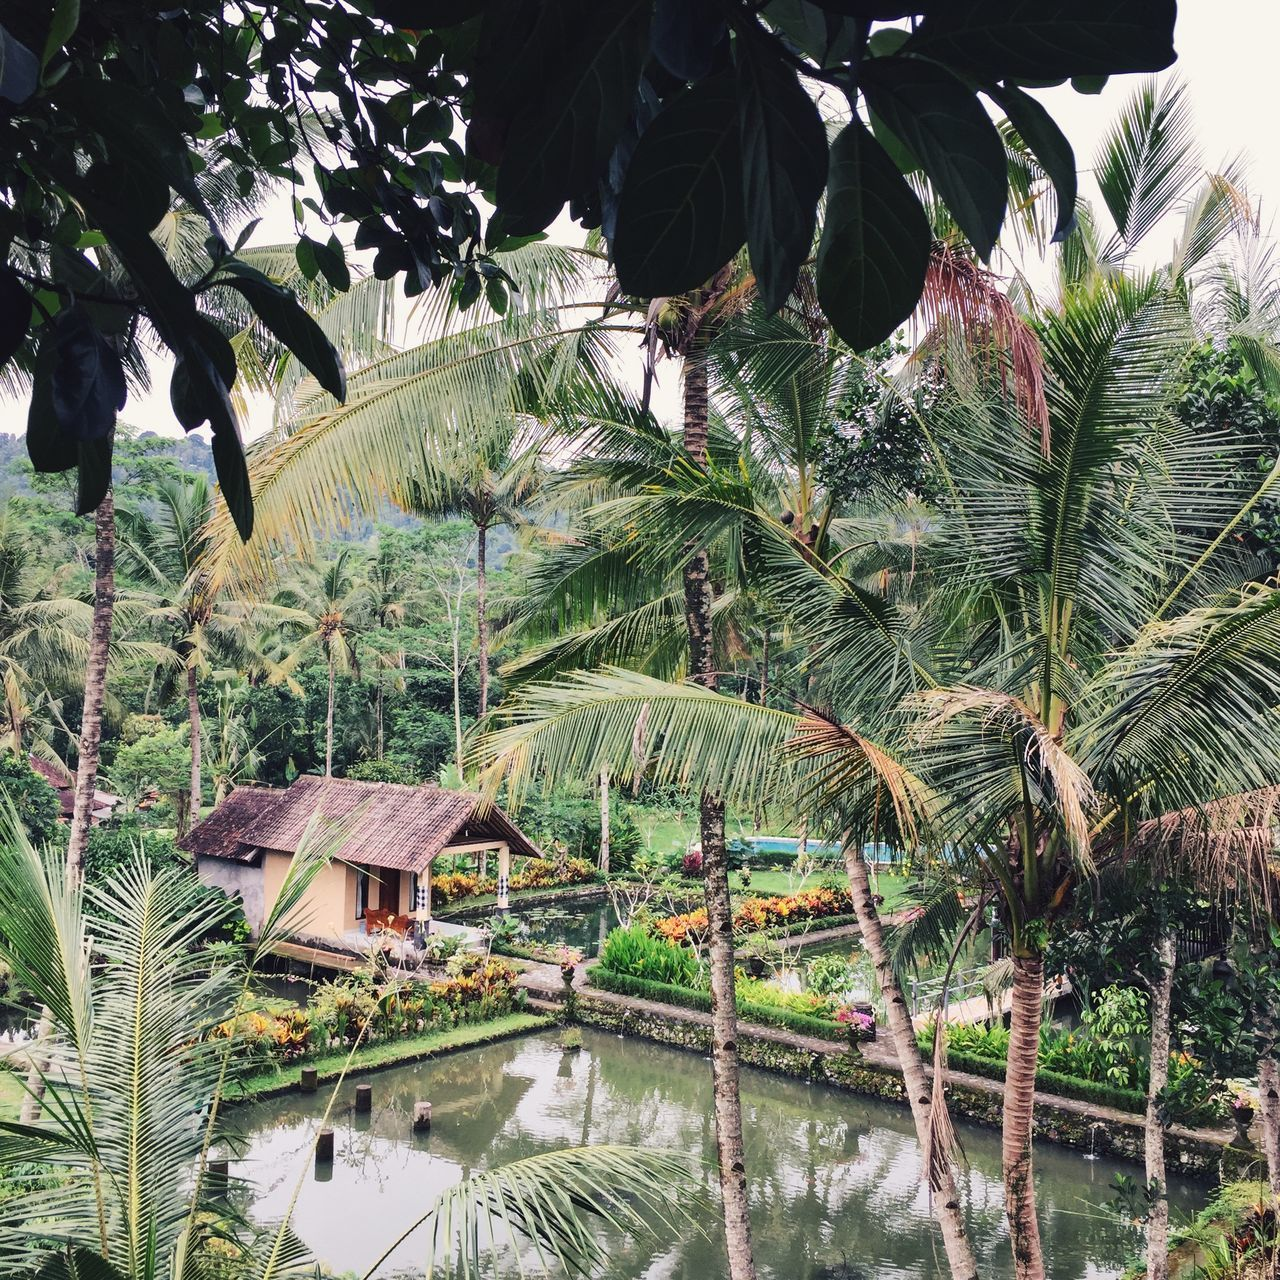 House in the jungle in Sidemen, Bali, Indonesia. Bali Bali, Indonesia Banana Tree Beauty In Nature Day Green Green Color Growth INDONESIA IPhone IPhoneography Jungle Nature No People Outdoors Palm Tree Palm Tree Plant Rice Field Sidemen South East Asia Square Tree Water